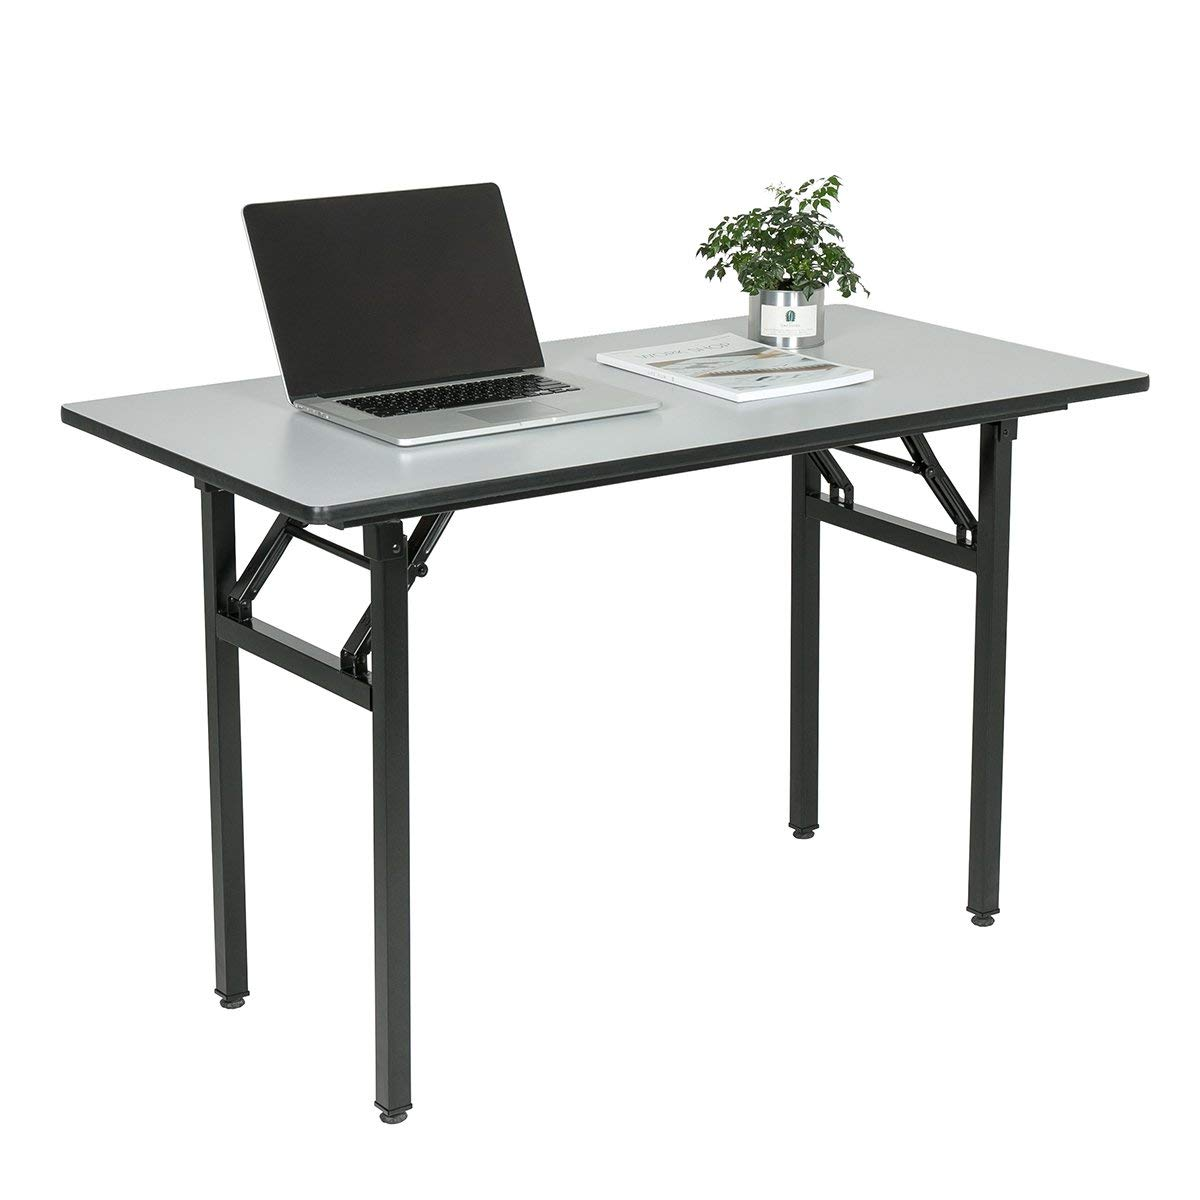 "Wove Computer Desk Office Desk Folding Table Computer Table Workstation No Install Neede (55"", Gray)"